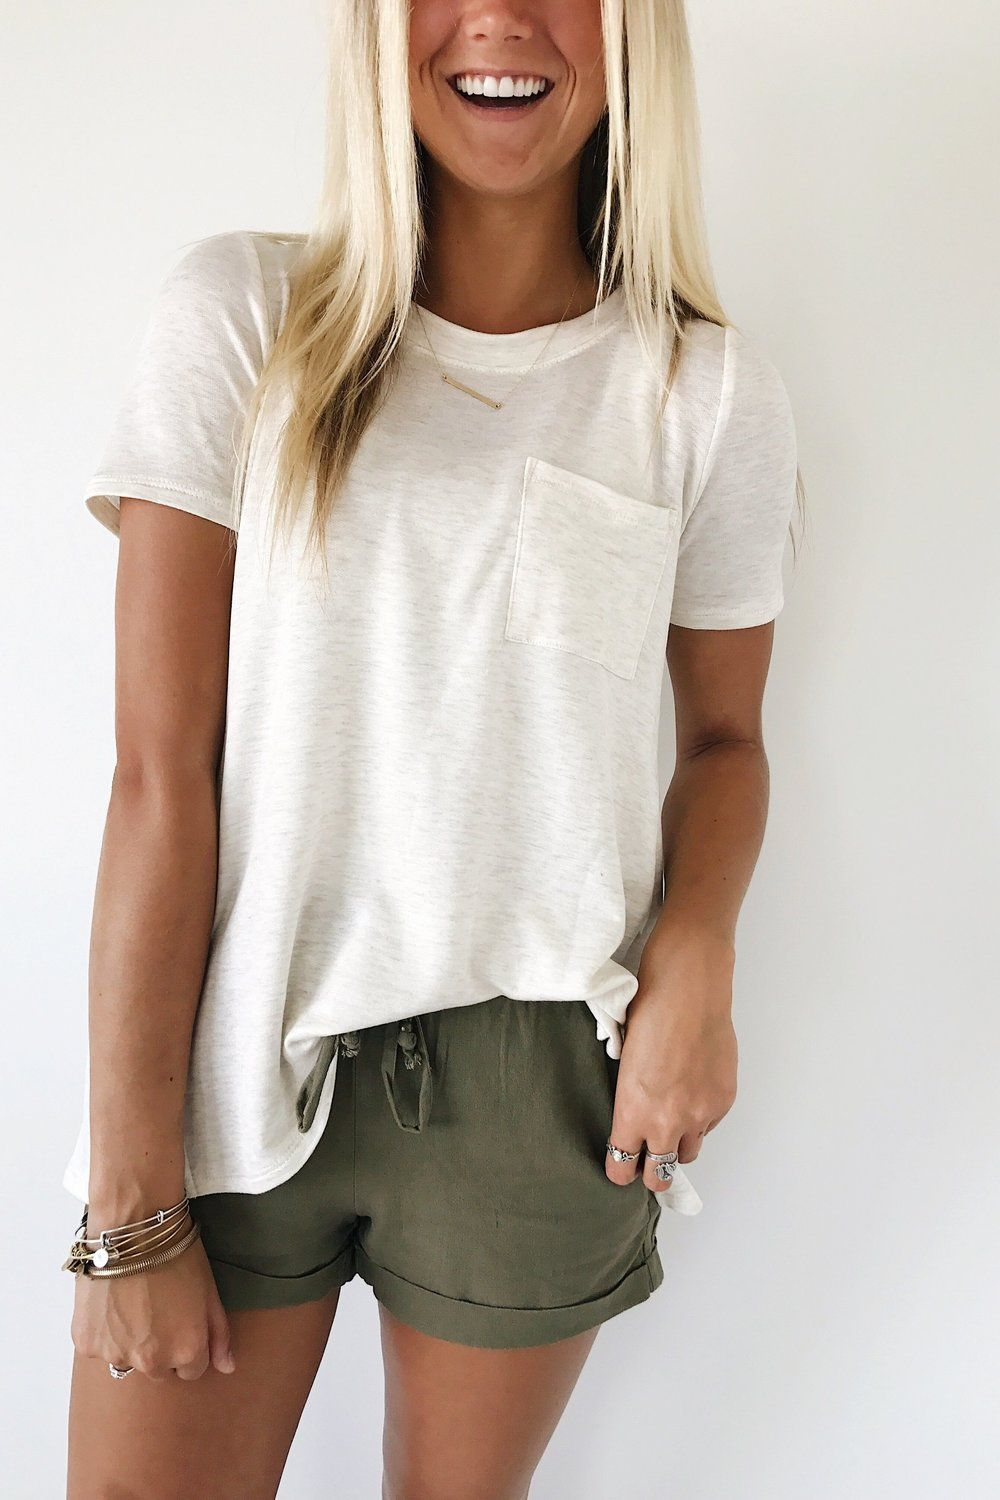 457ac19e634 Oatmeal Heathered Top Front Pocket Mini Side Slits Loose Fit Also ...